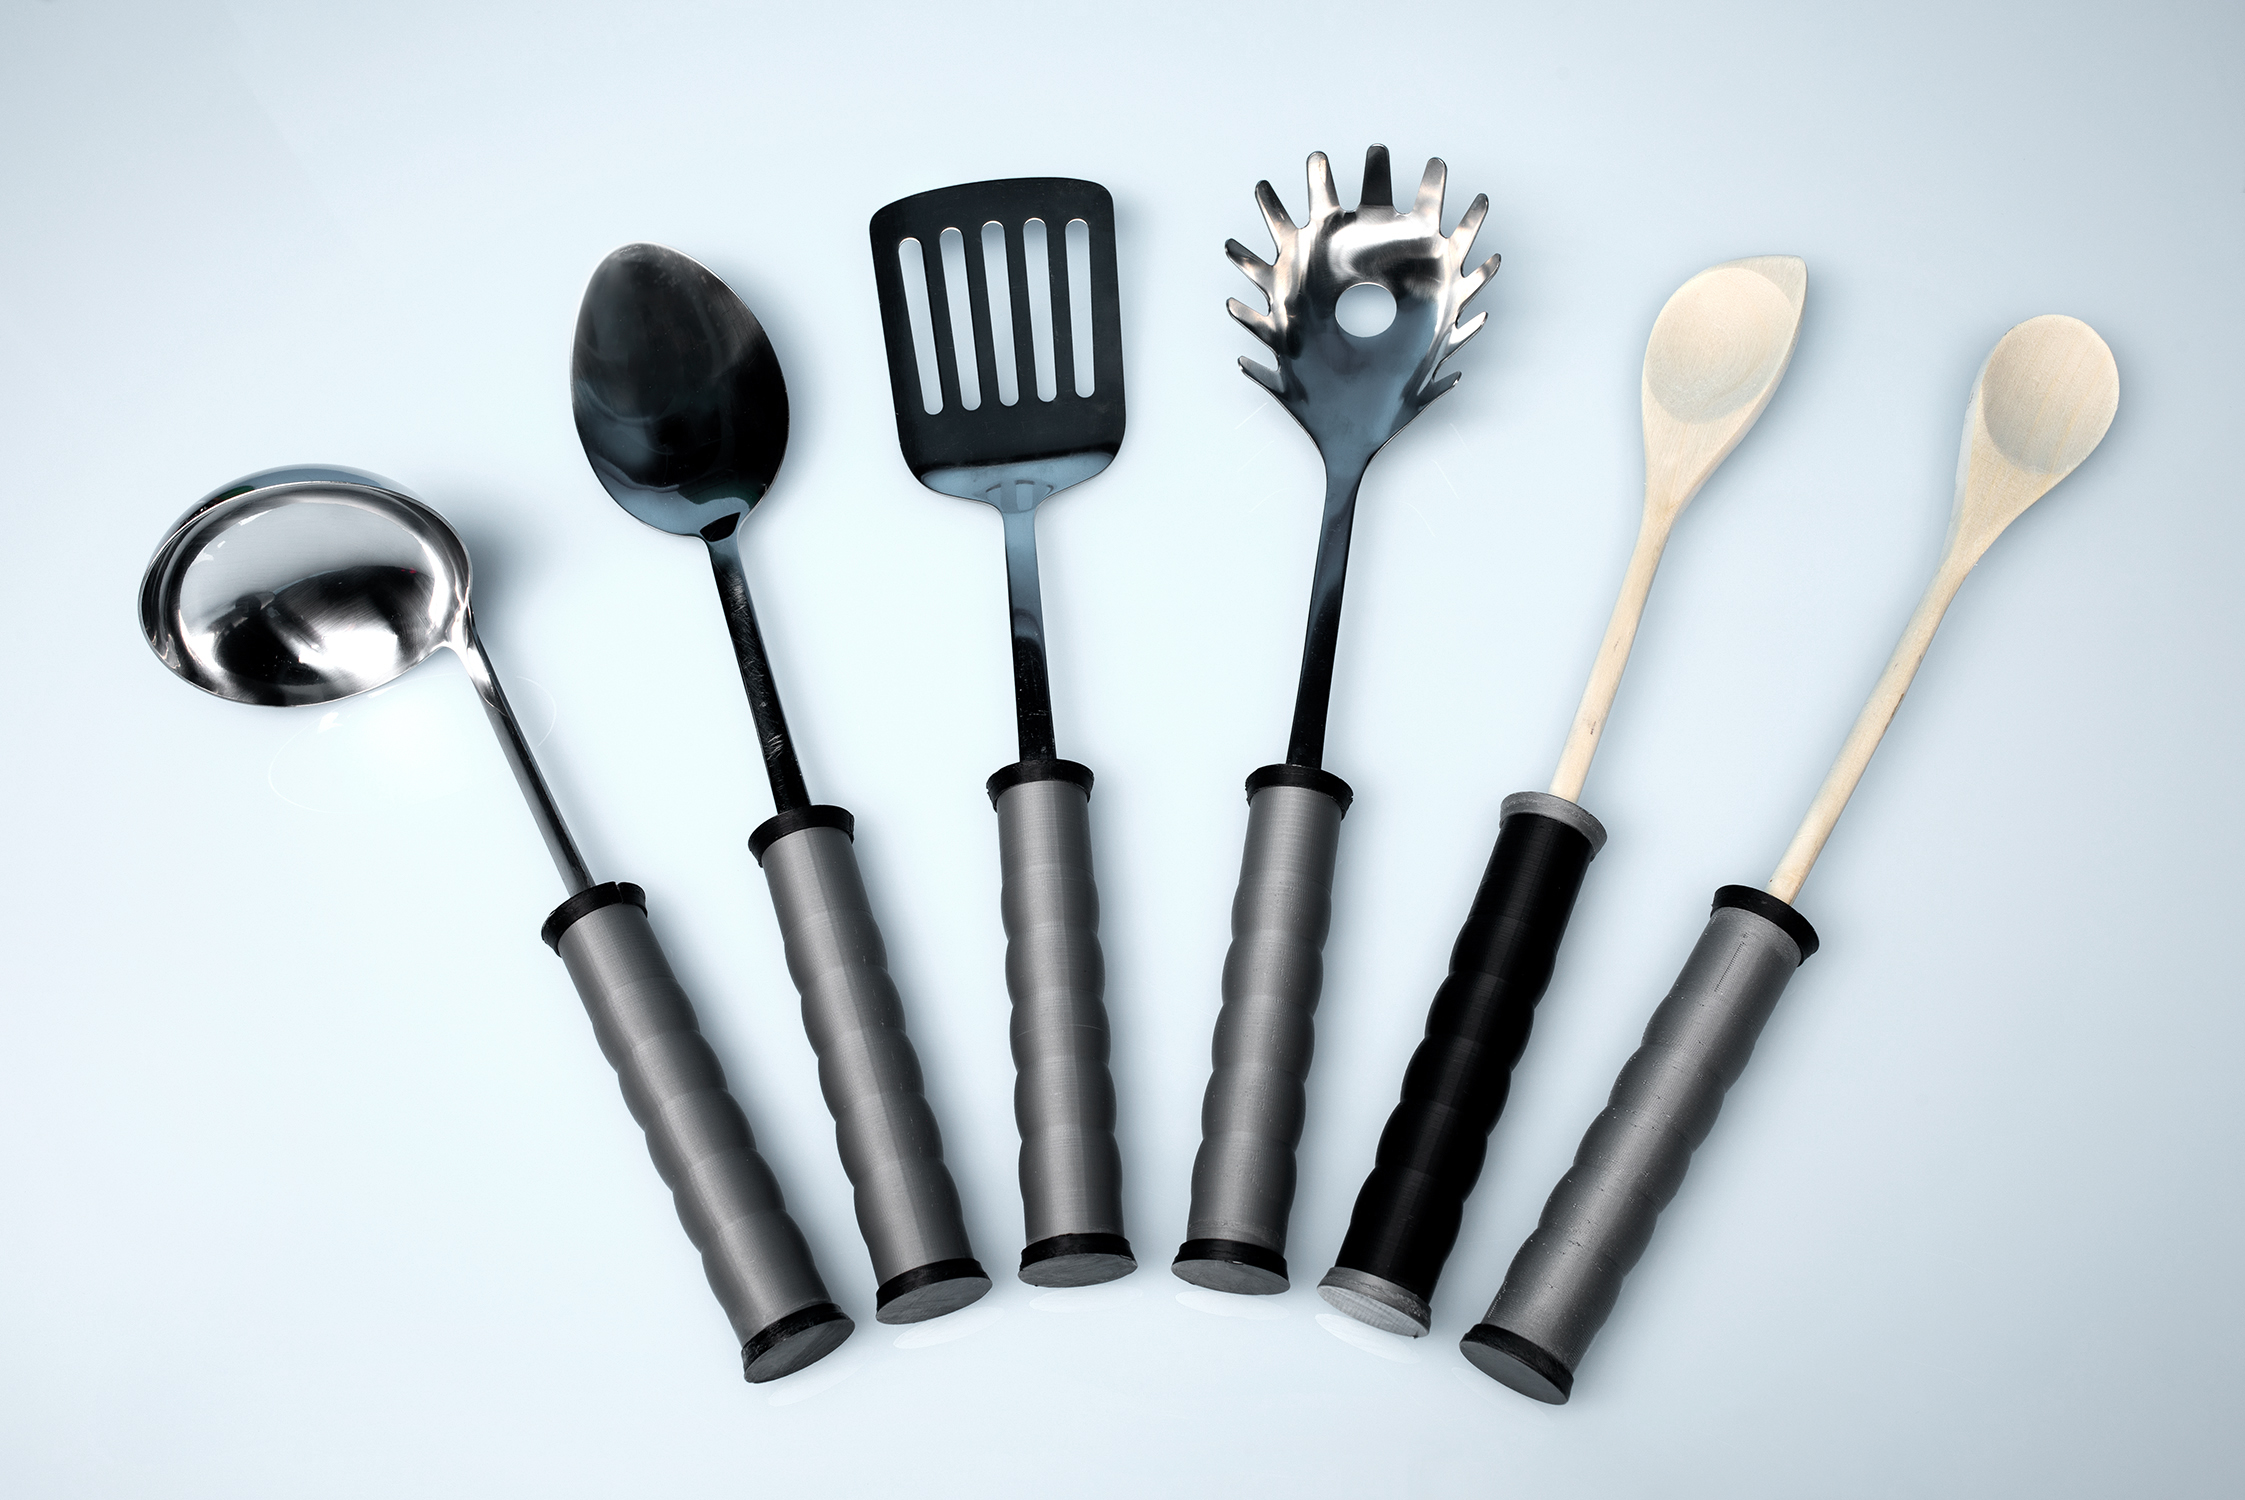 weighted cook set